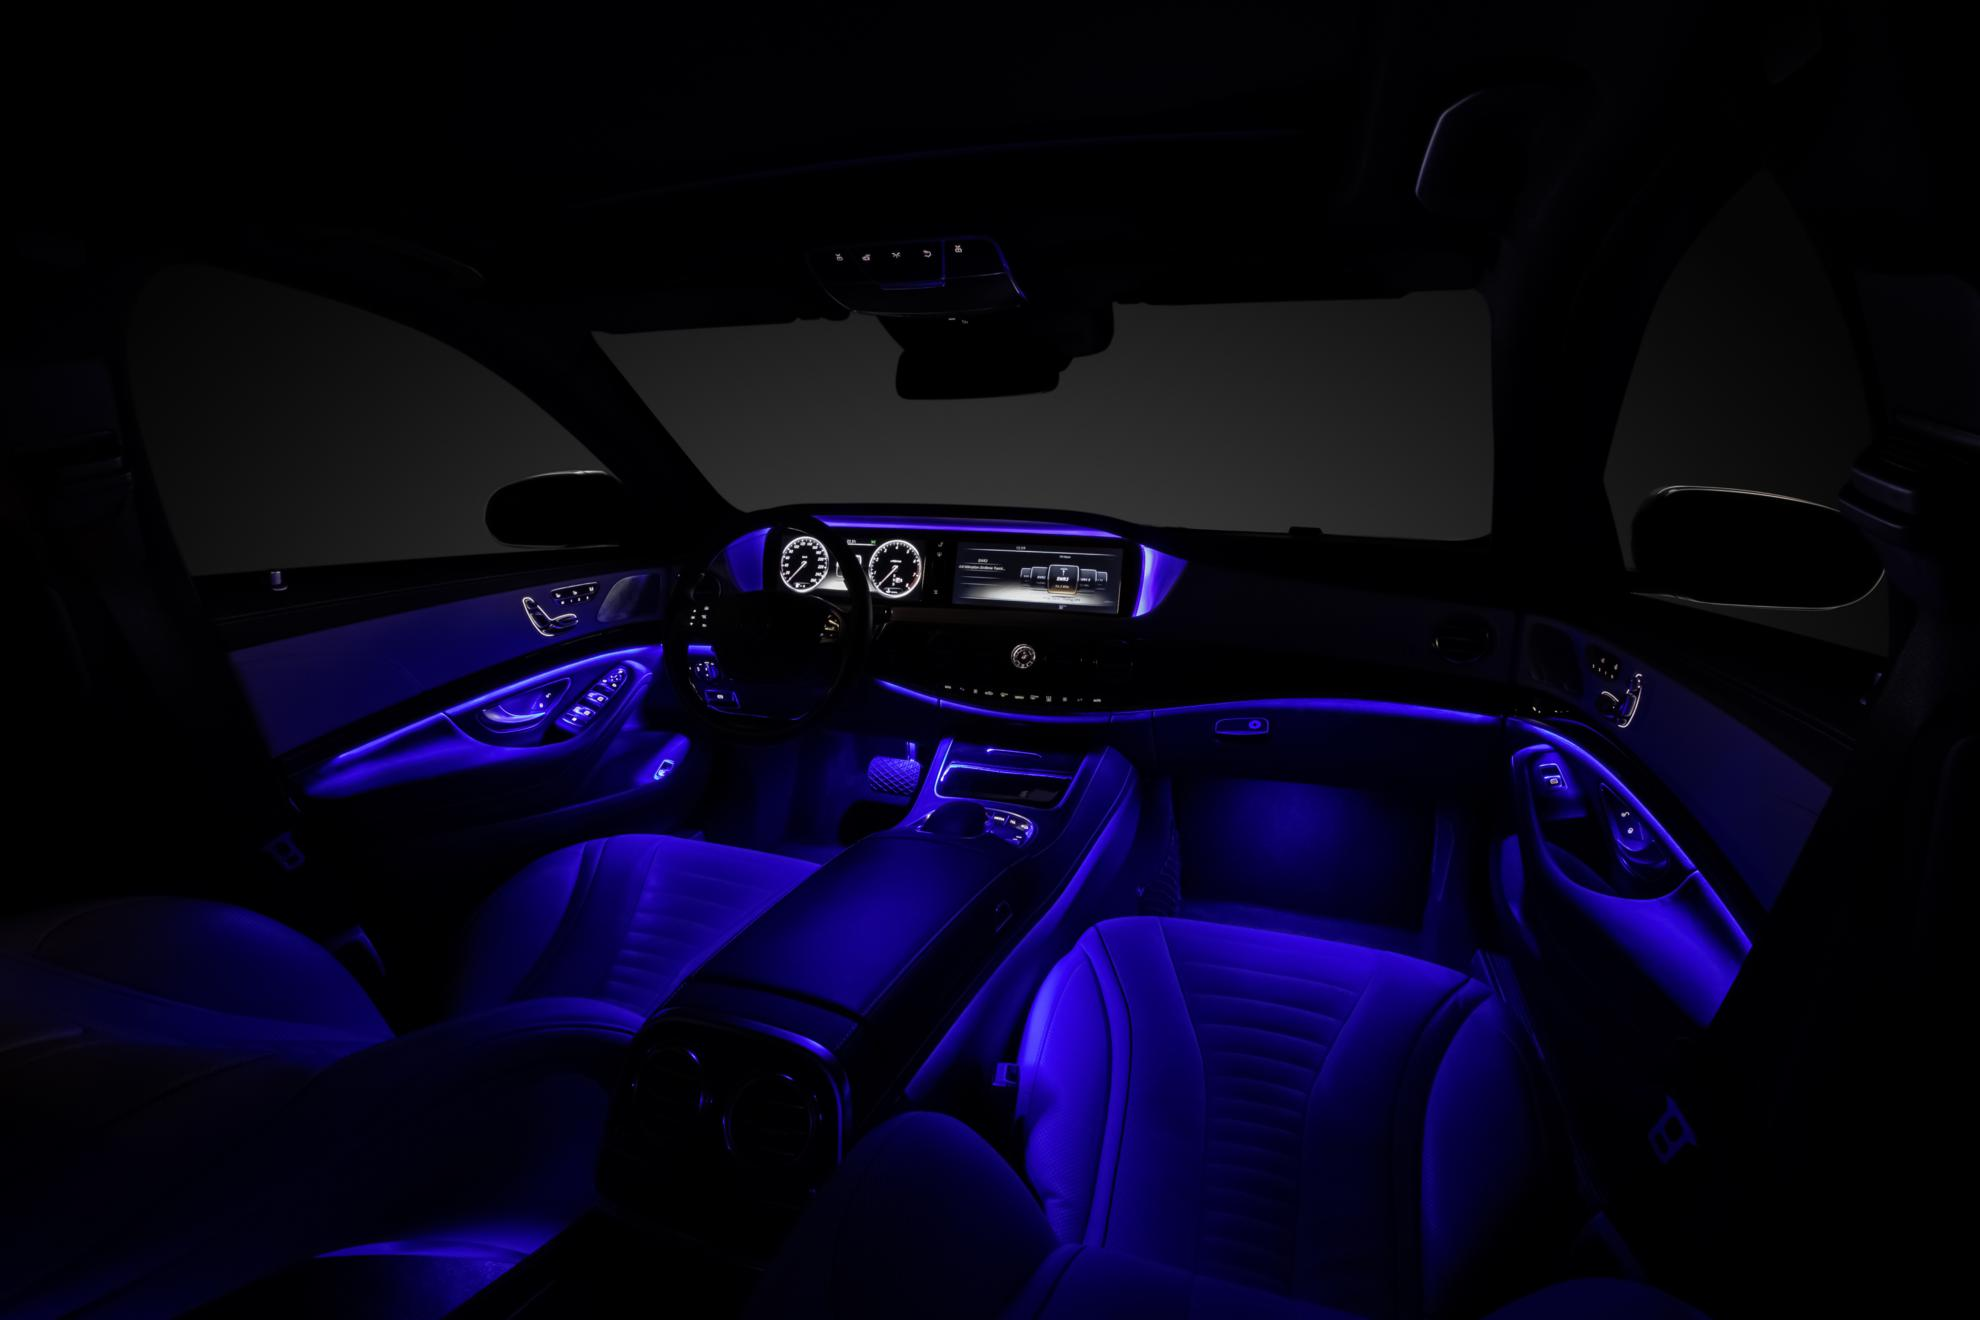 Mercedes benz s class interior design visual breadth and for Mercedes benz upholstery